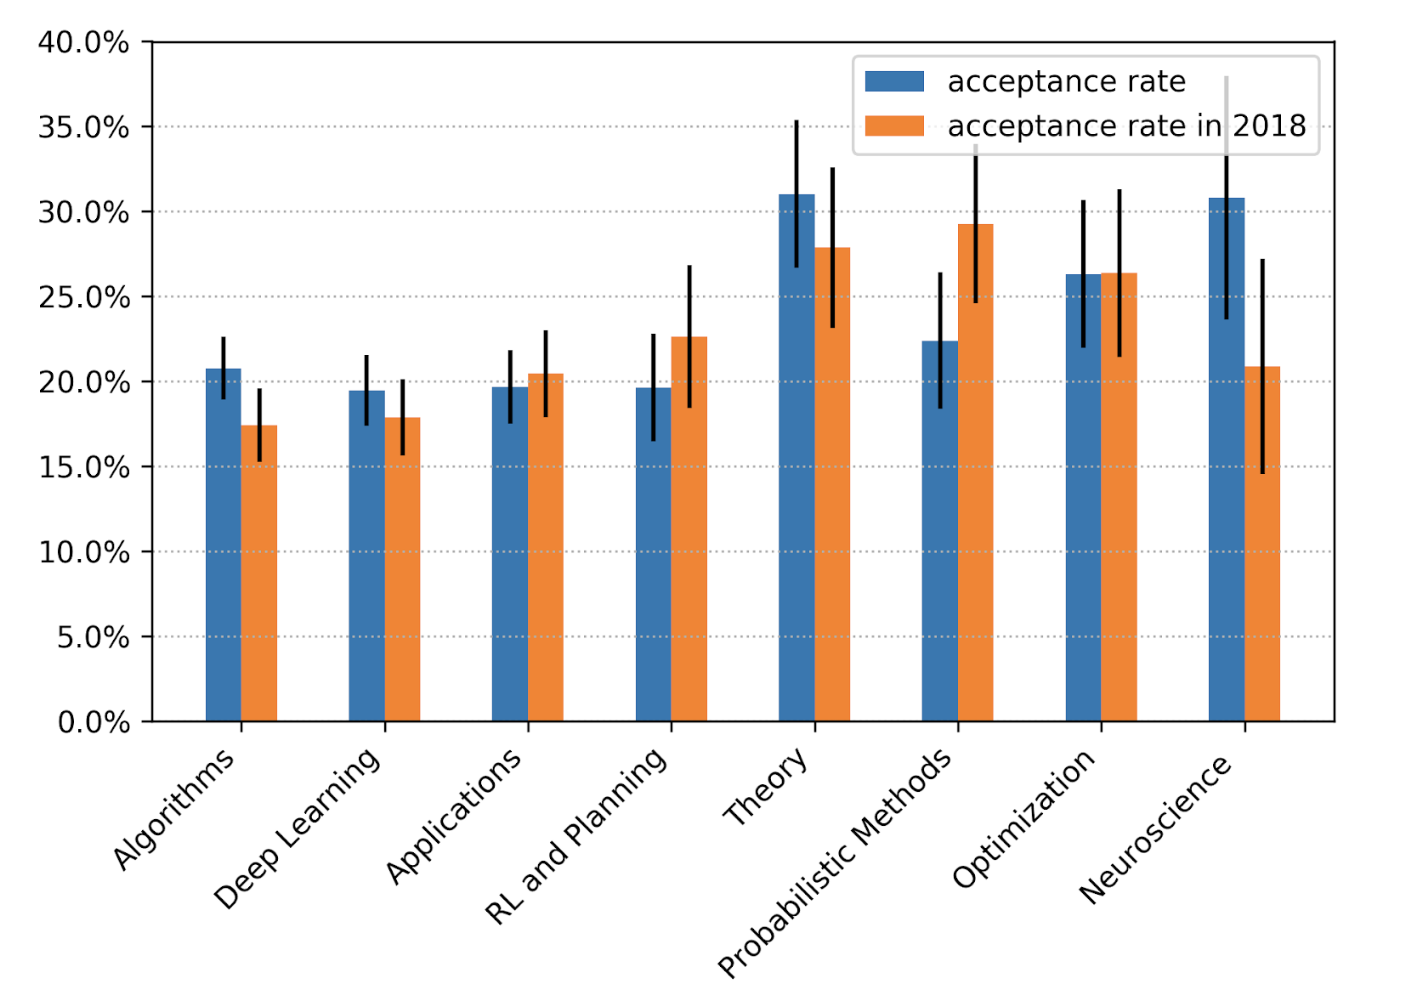 Neuroscience is the category with the highest acceptance rate